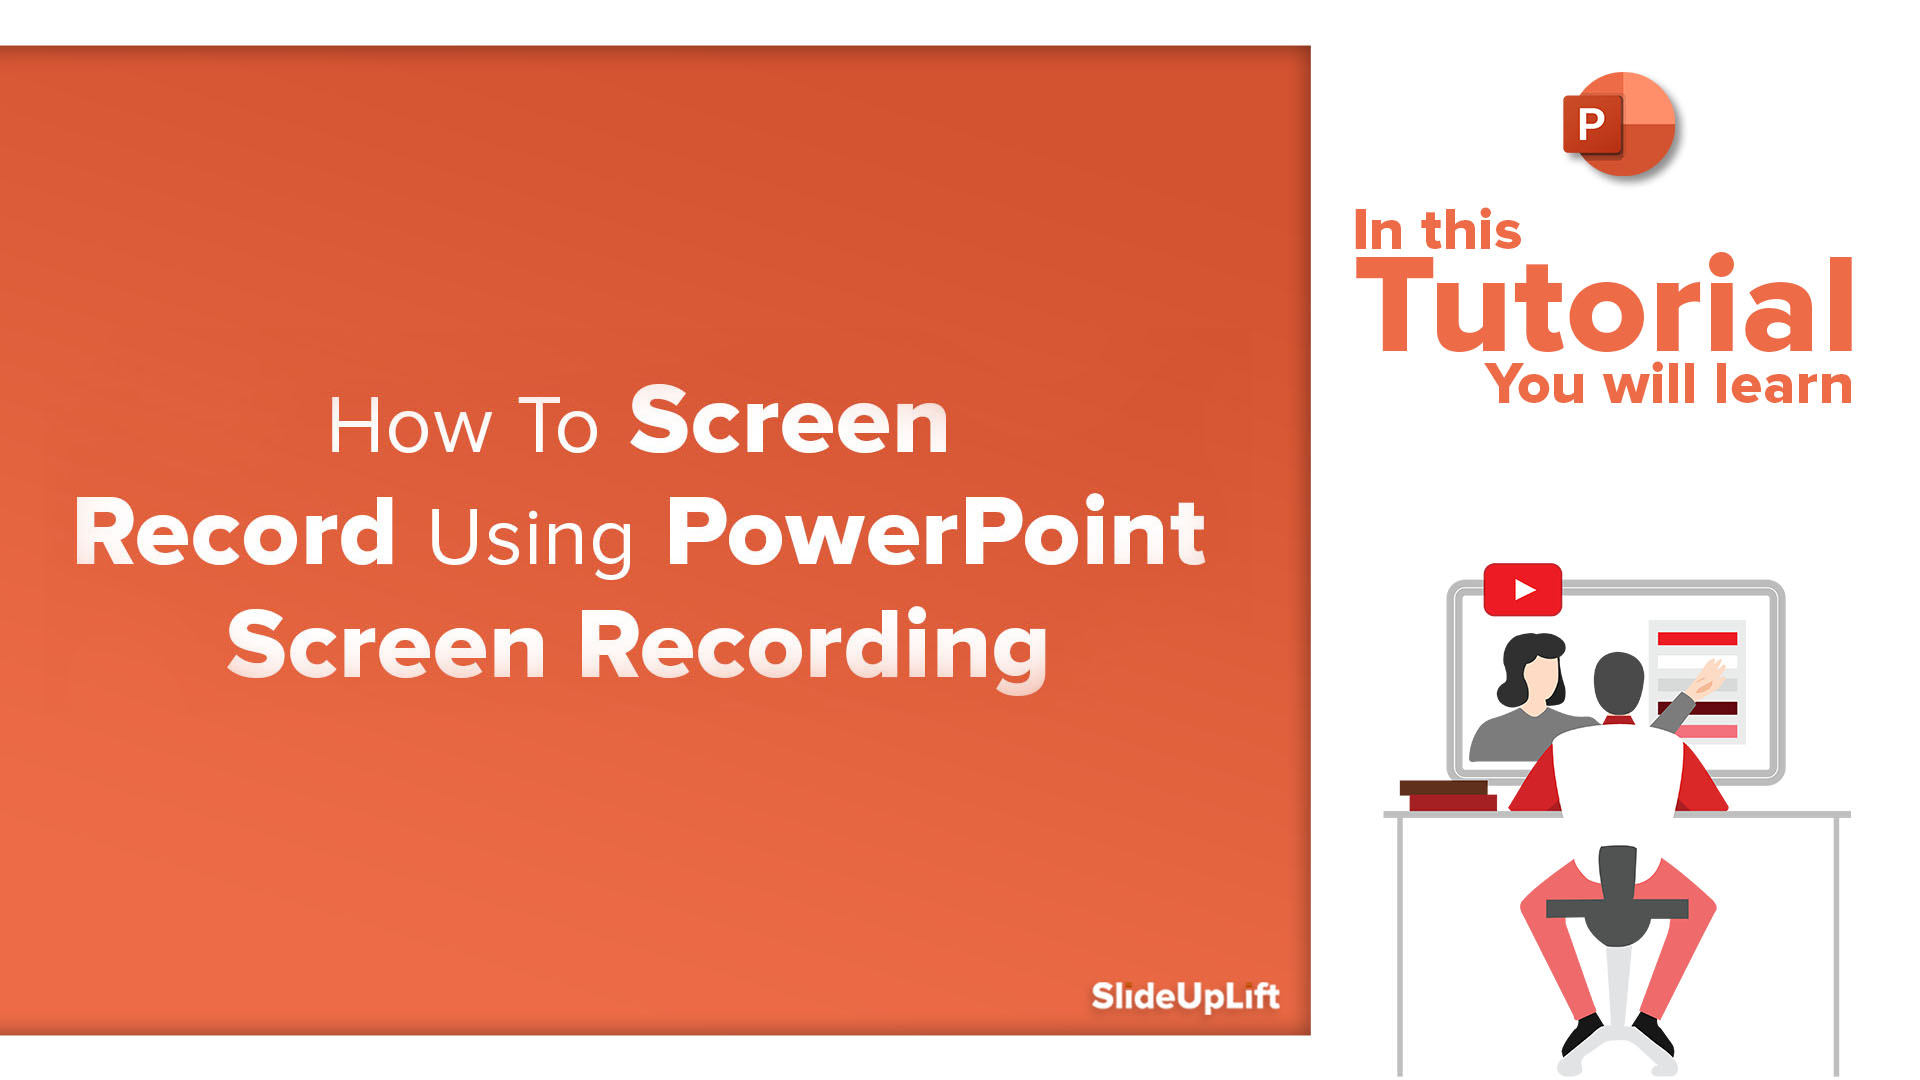 How To Screen Record Using PowerPoint Screen Recording | How To Record Your Screen | PowerPoint Tutorial